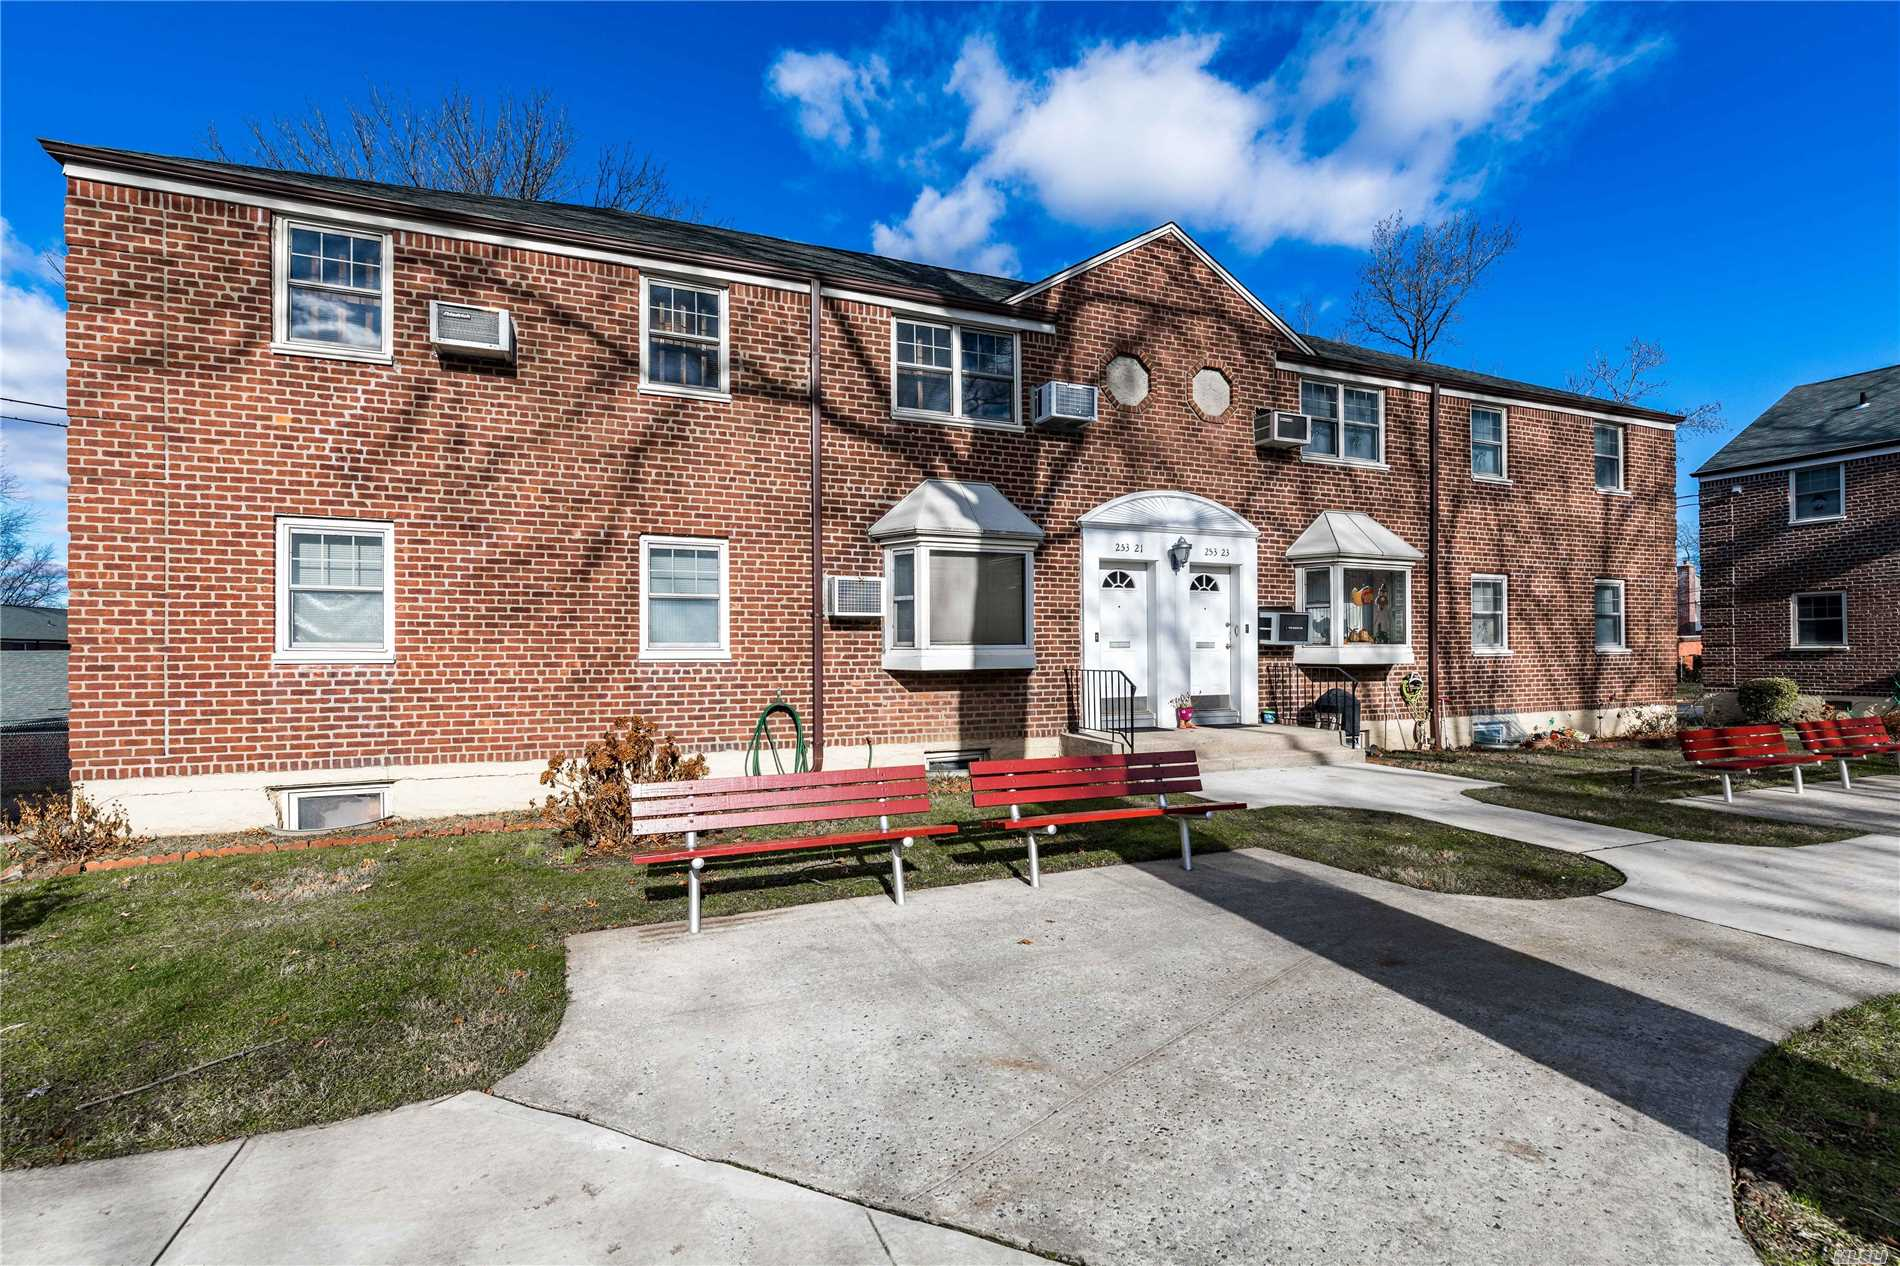 Approximately 1032 Sq. Ft. Must See! Bigger Than Other 3 Bedroom Co-Op Units With Closets. Low Maintenance With All Utilities Included. The Size And Number Of Rooms Is An Affordable Alternative To Residential Property. Laundry Room In Bldg. Includes Parking Permit. Desired Location And School District 26. Playground And Security. Right Off Gcp. Convenient Public Transportation And To All Everyday Conveniences. 2017 Suggested Deductible For Real Estate Tax Purposes Was About $2, 837.12